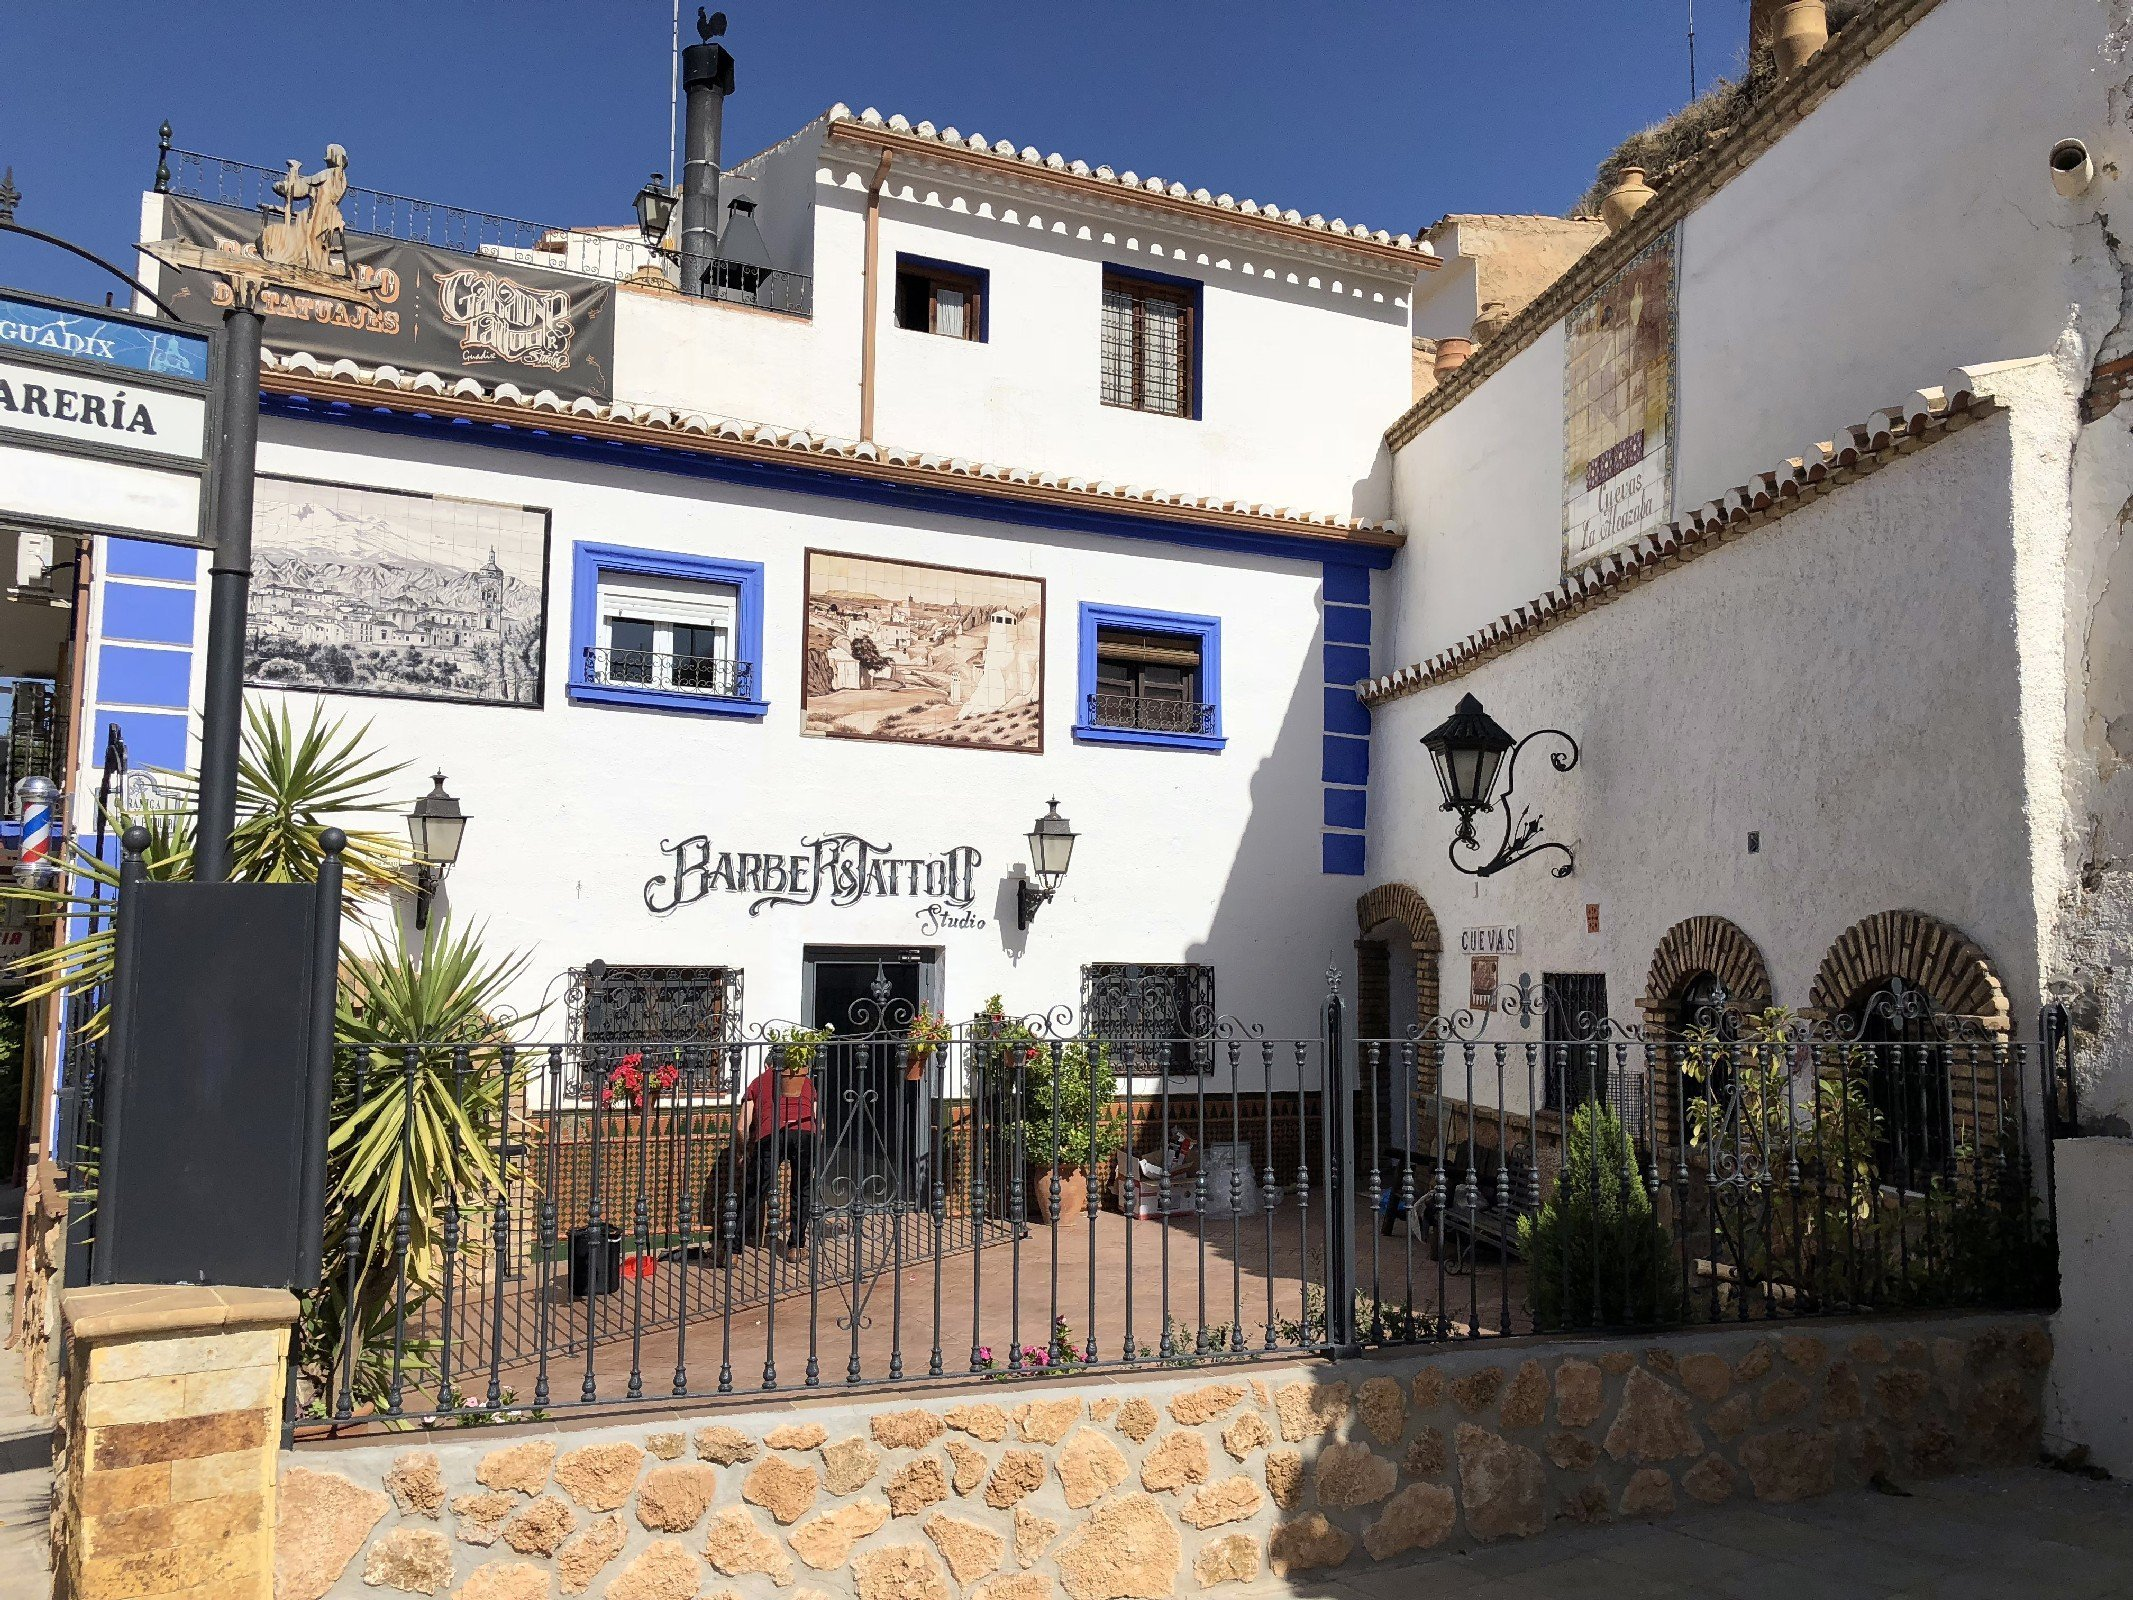 Guadix, Spain by Jets Like Taxis